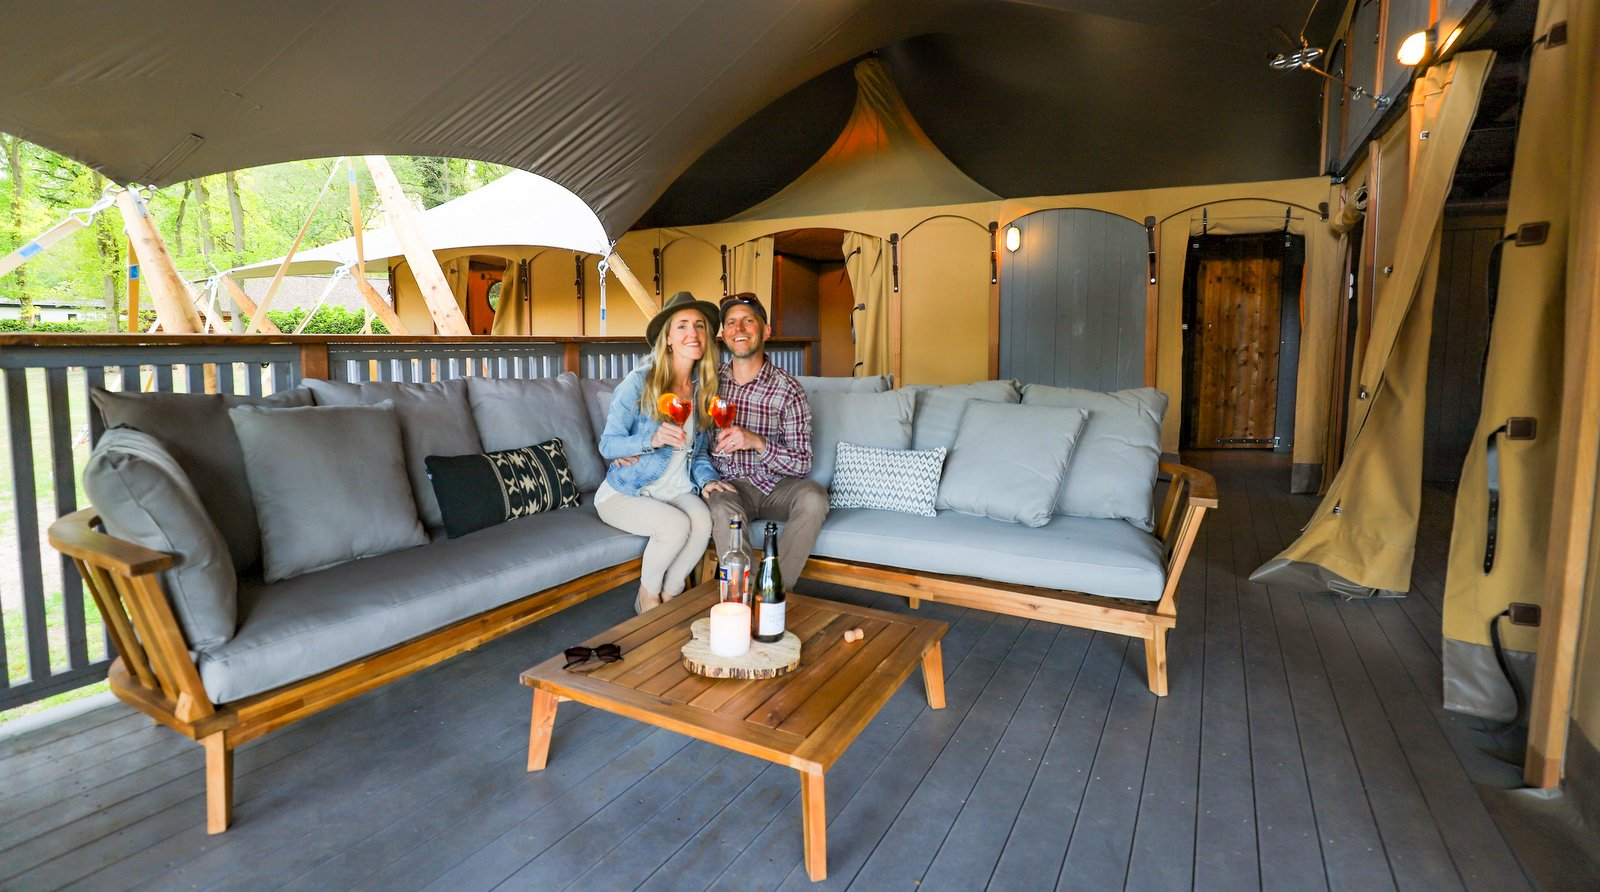 Work With The Glamping Experts